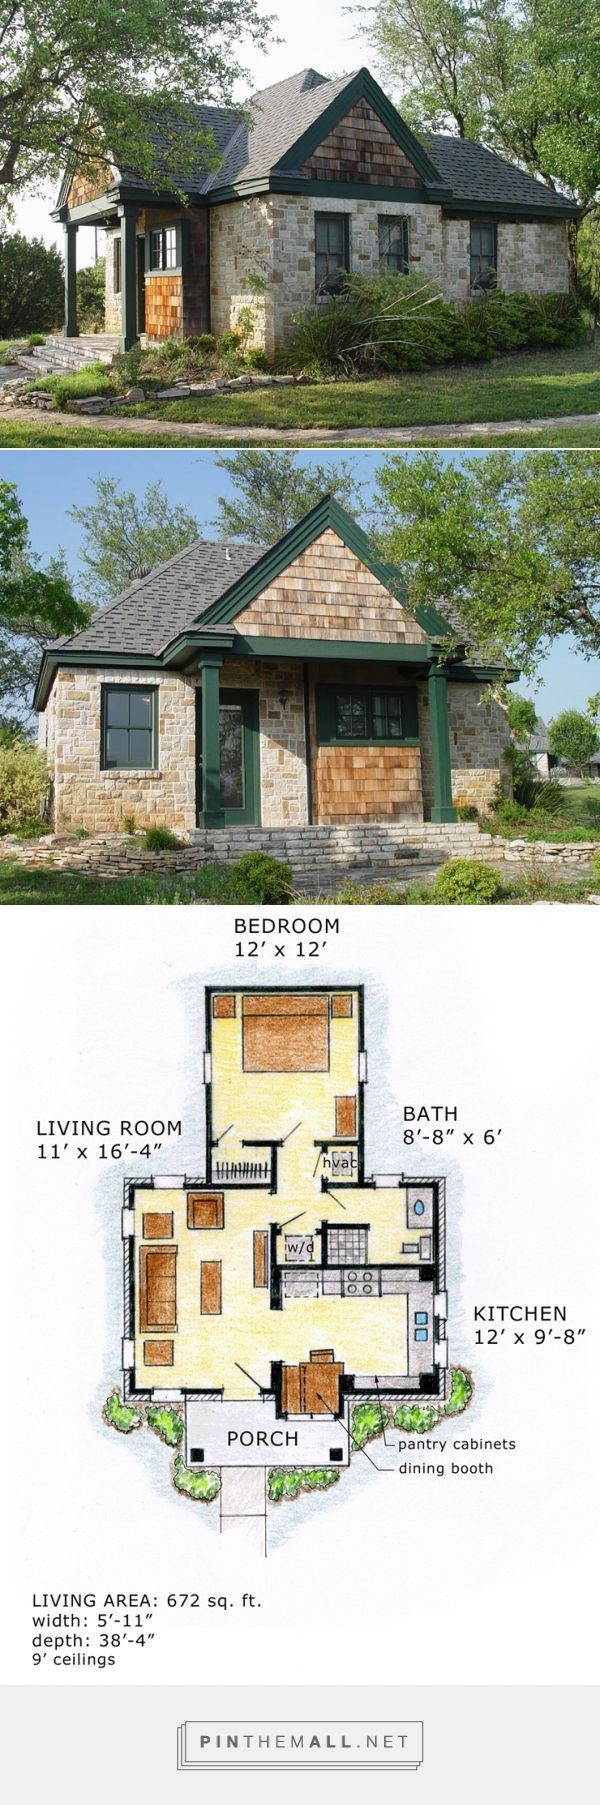 House plan at familyhomeplans a grouped images